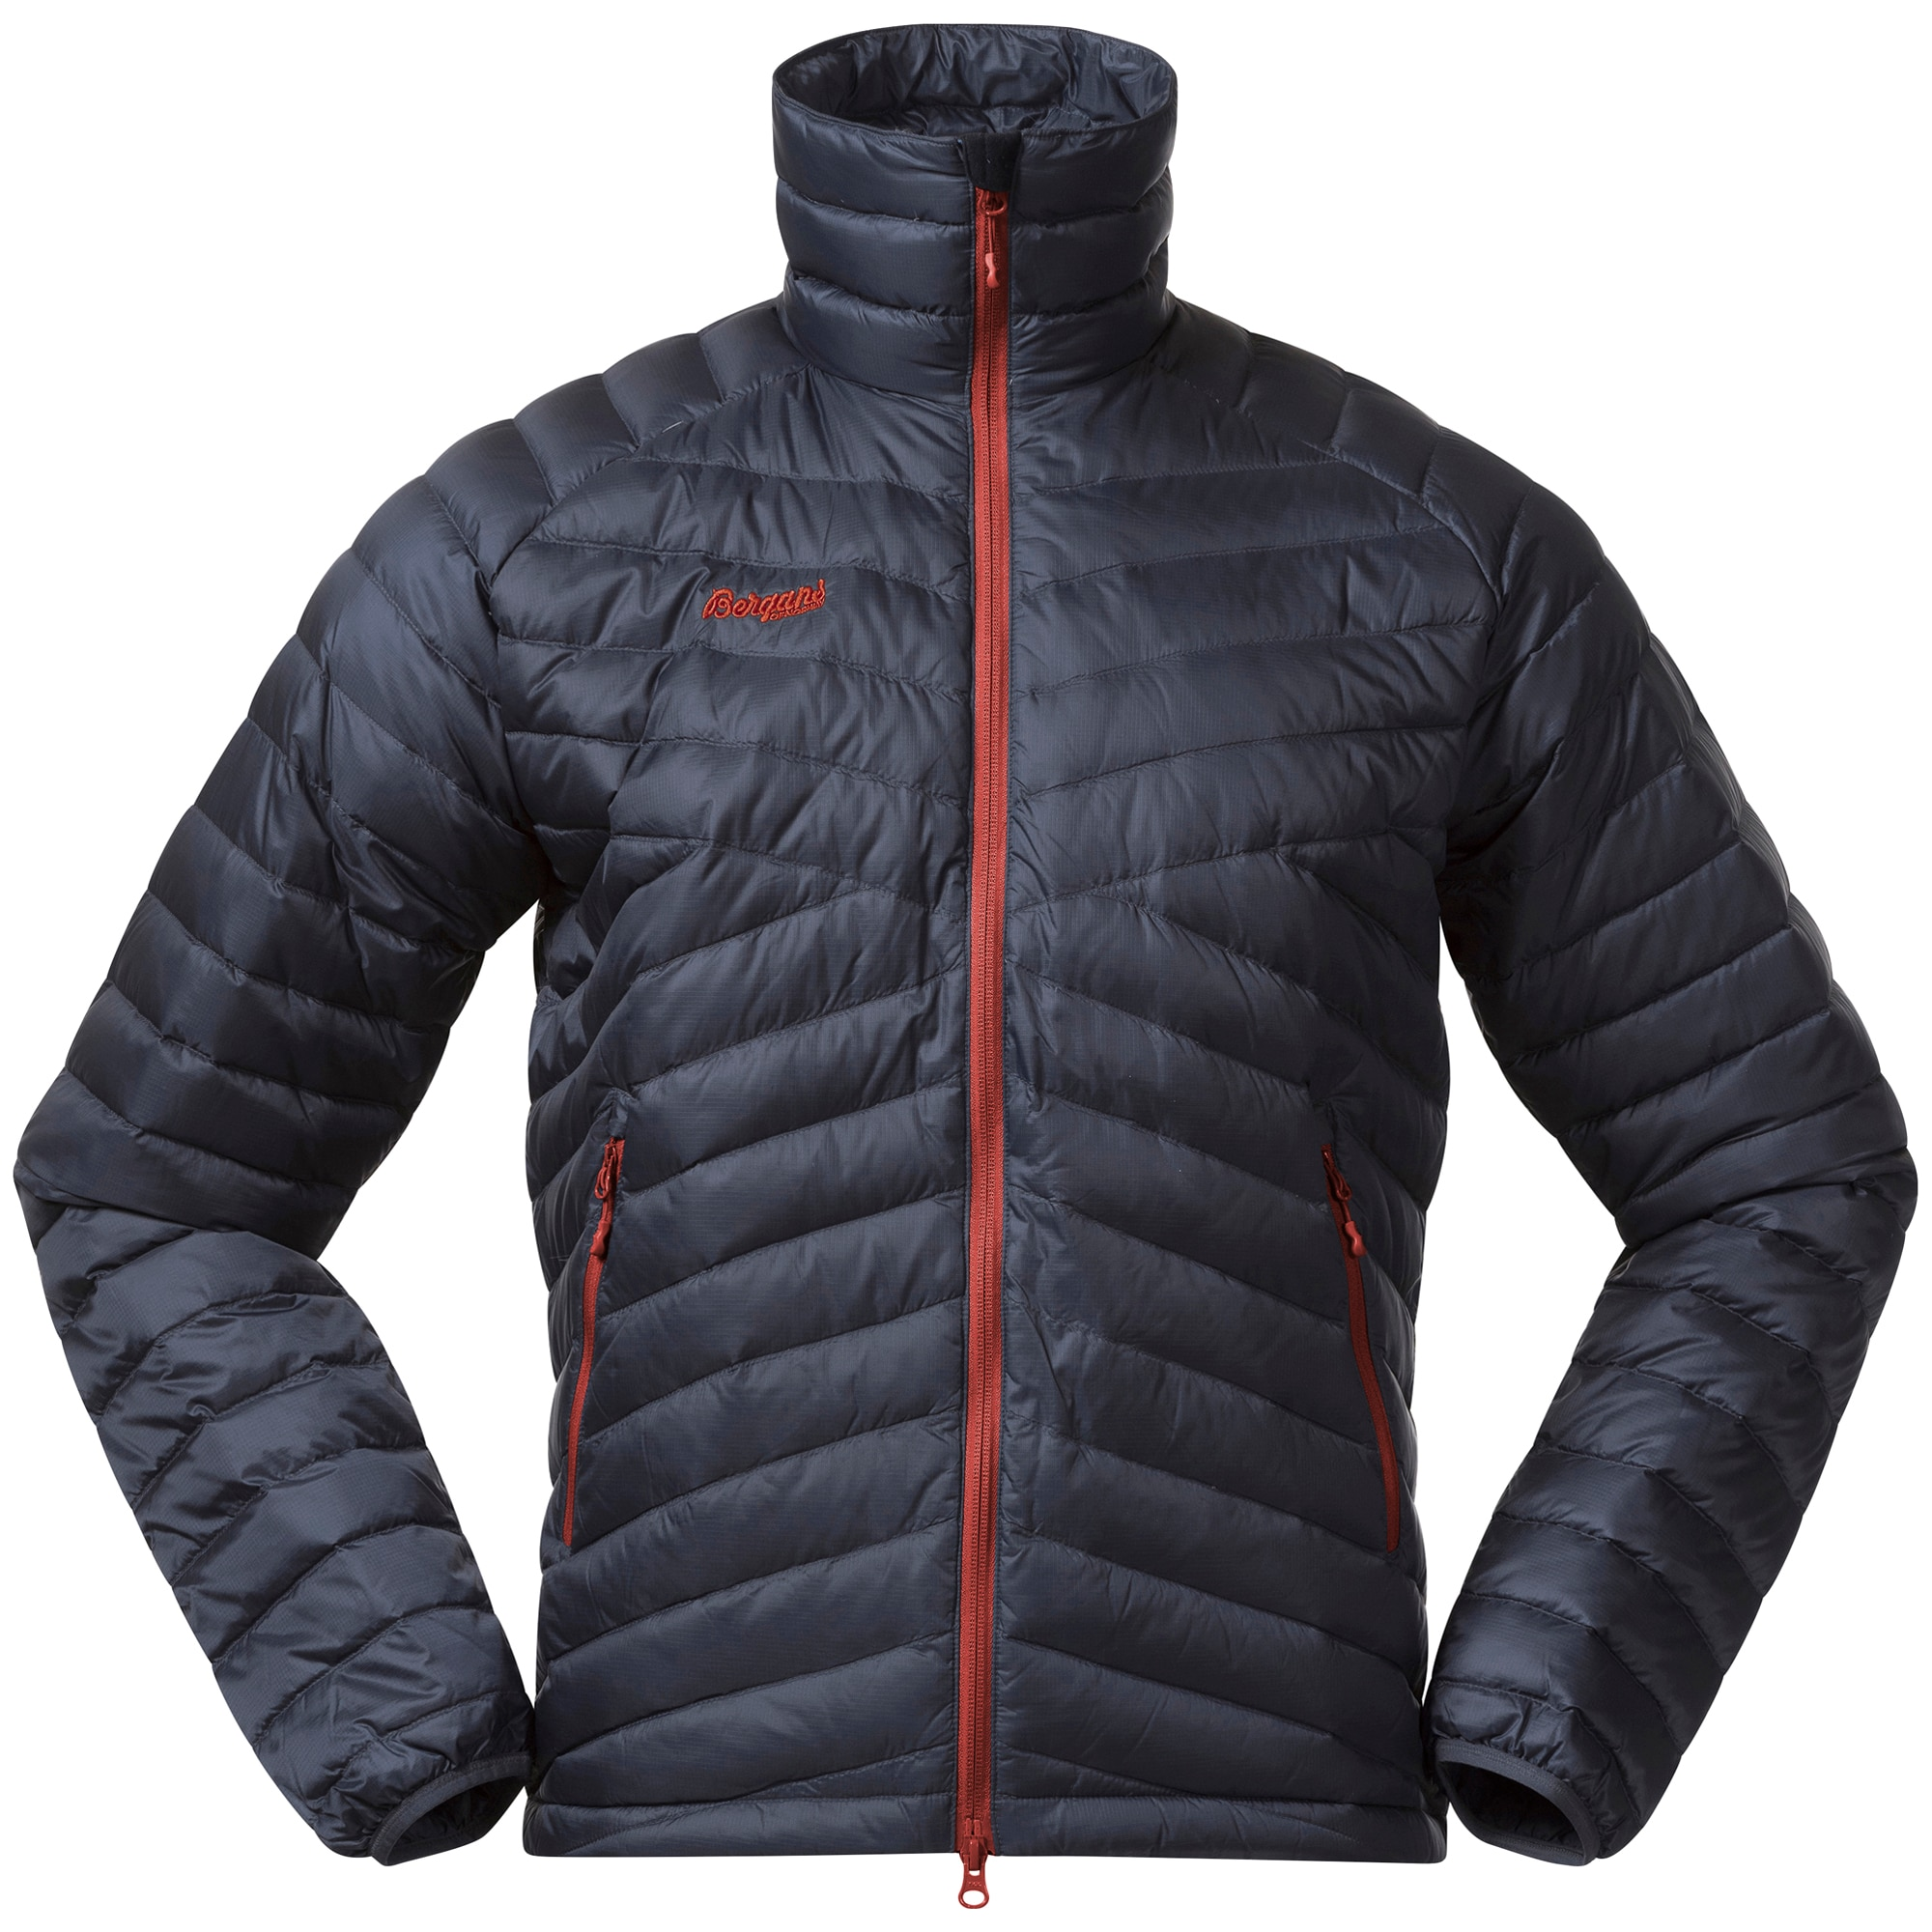 Pyttegga Down Jacket